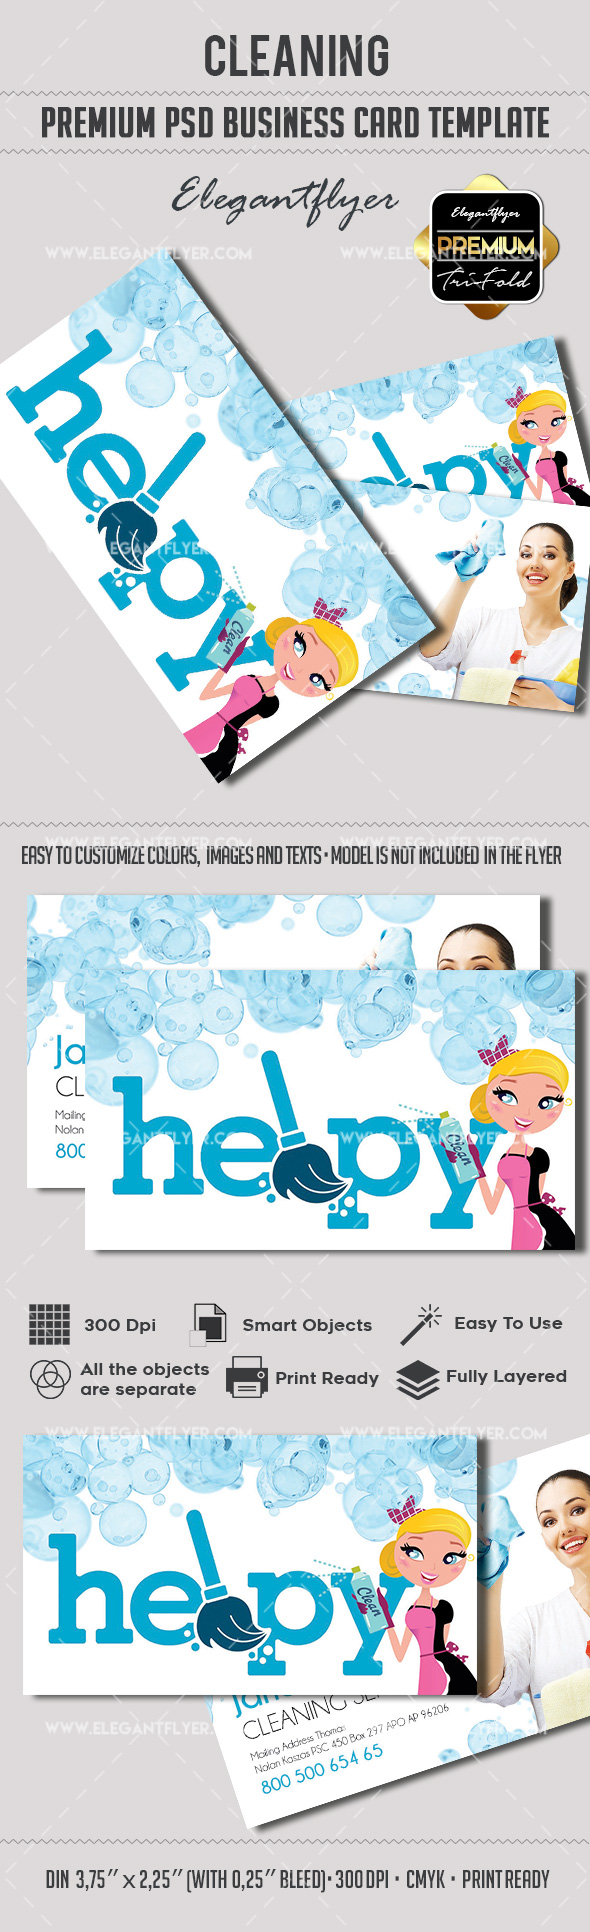 Cleaning Service Business Card – by ElegantFlyer